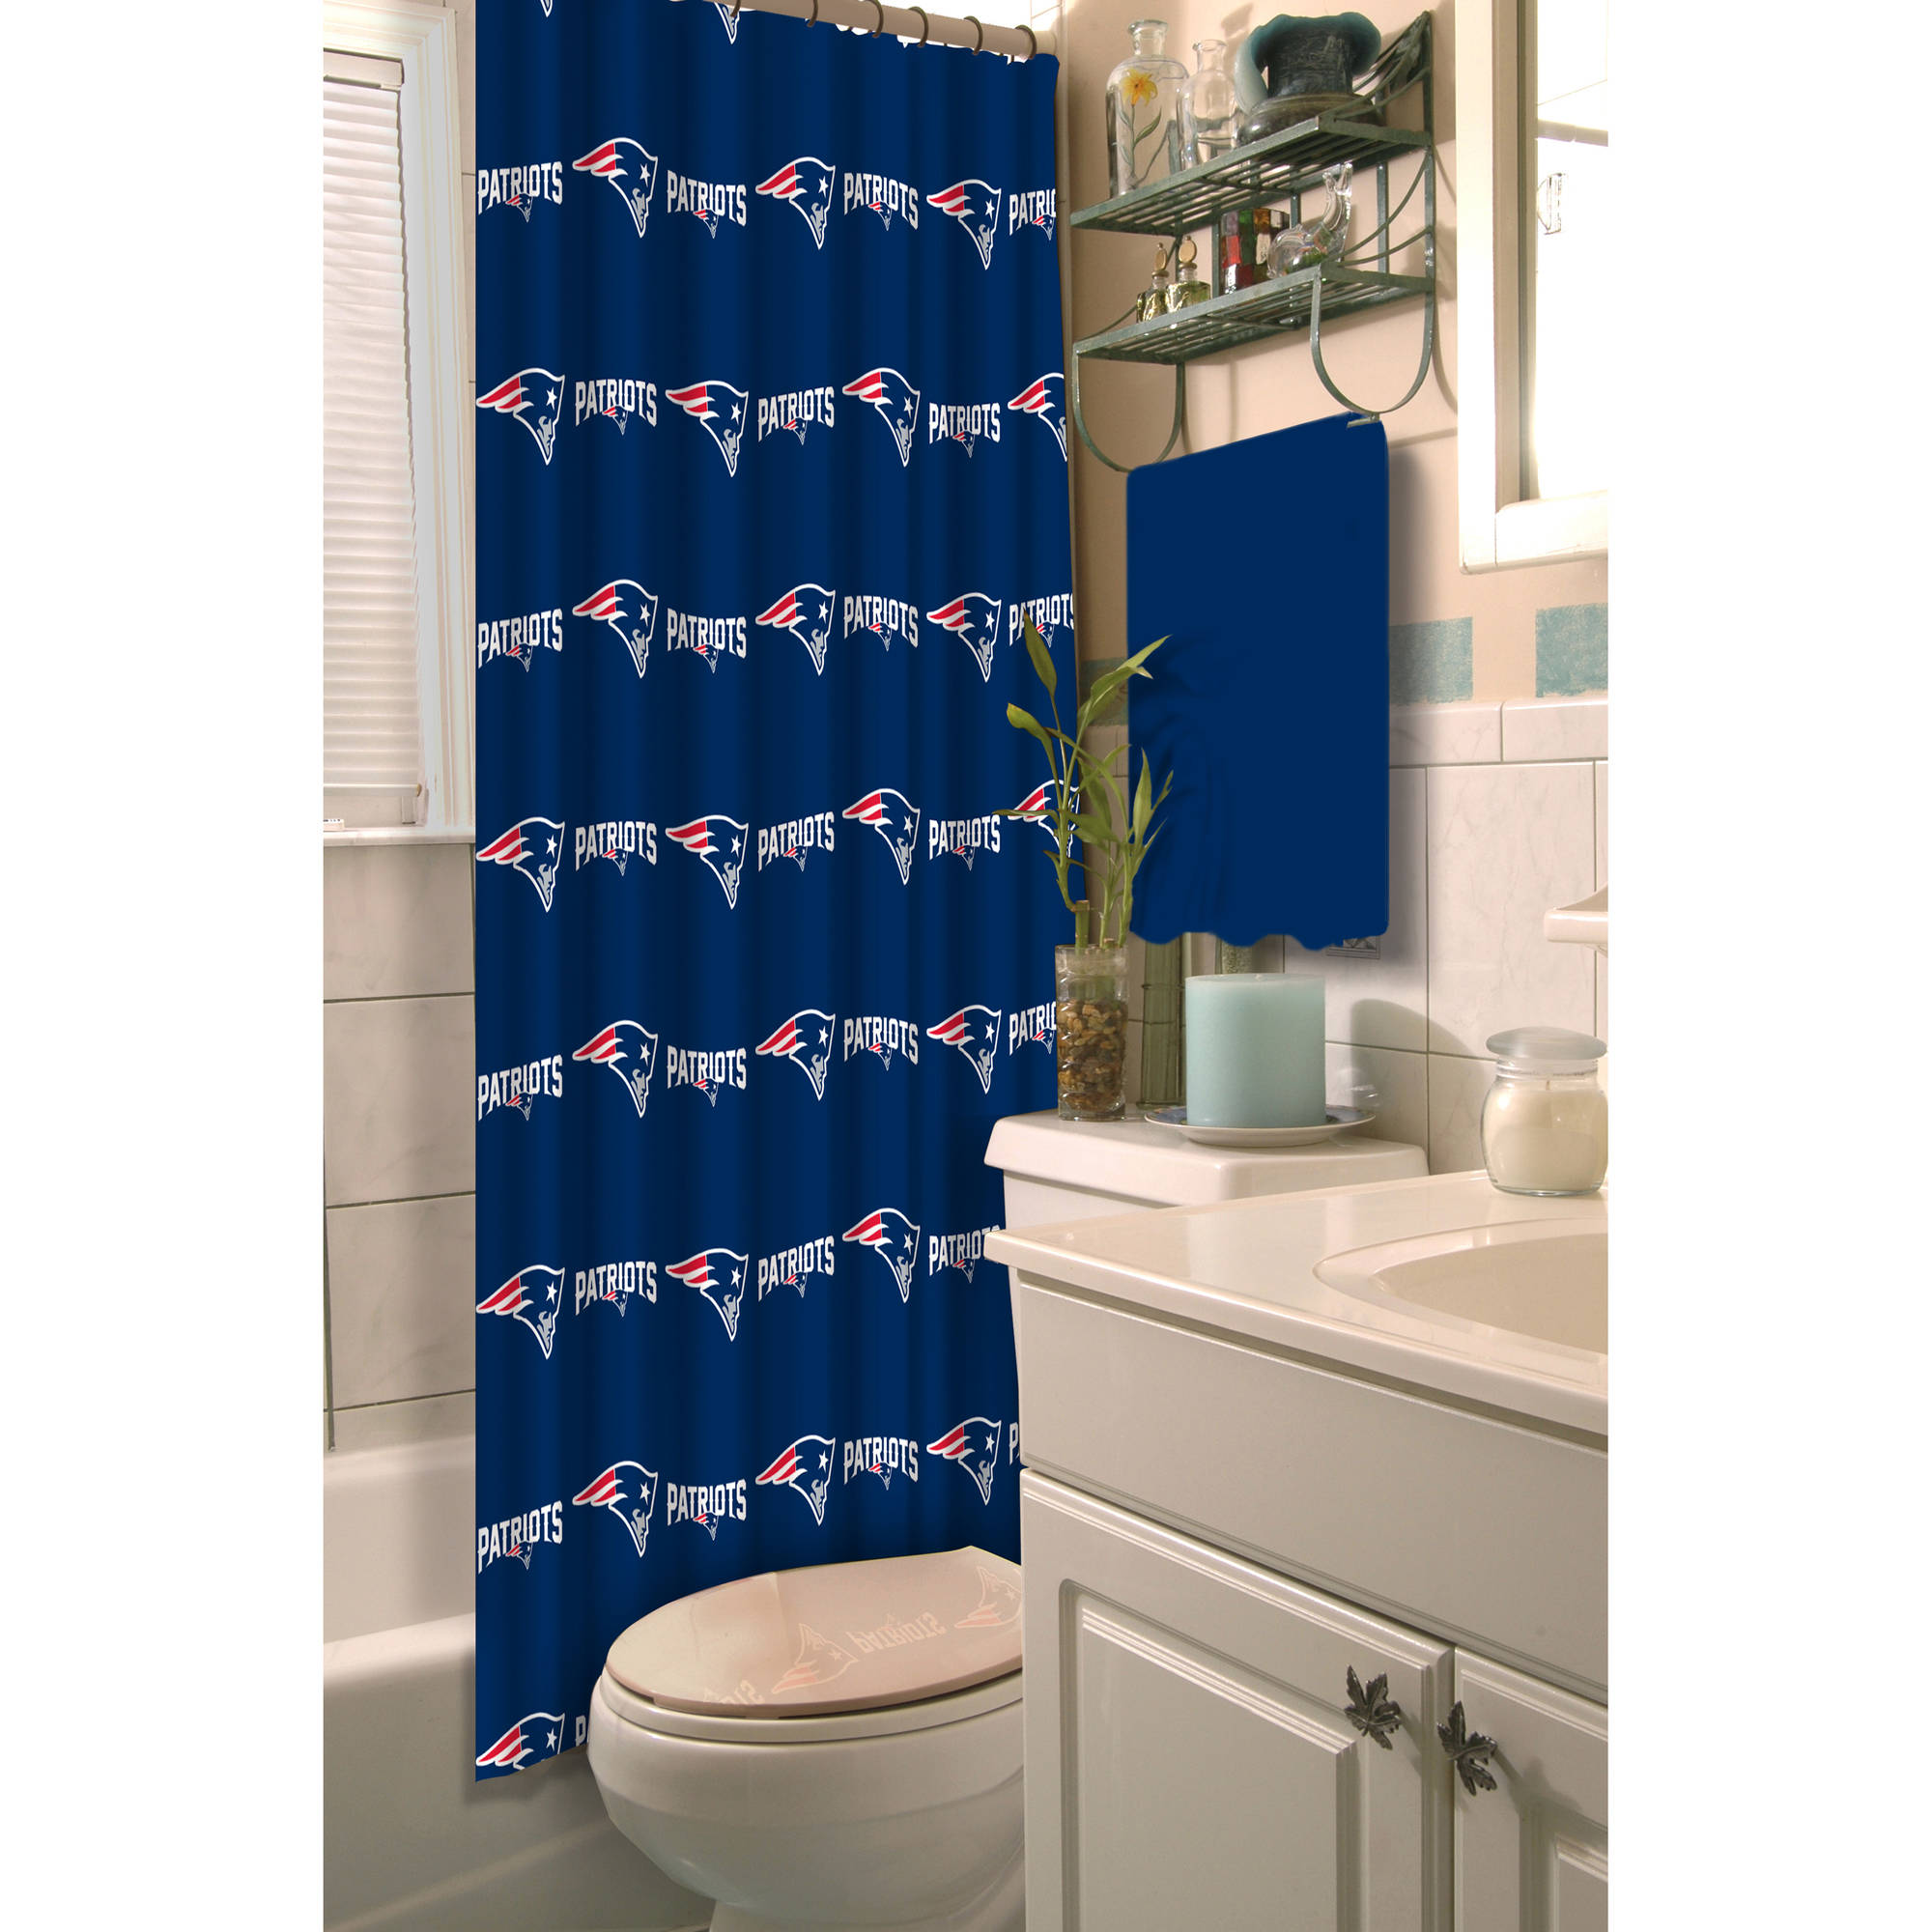 NFL New England Patriots Decorative Bath Collection - Shower Curtain